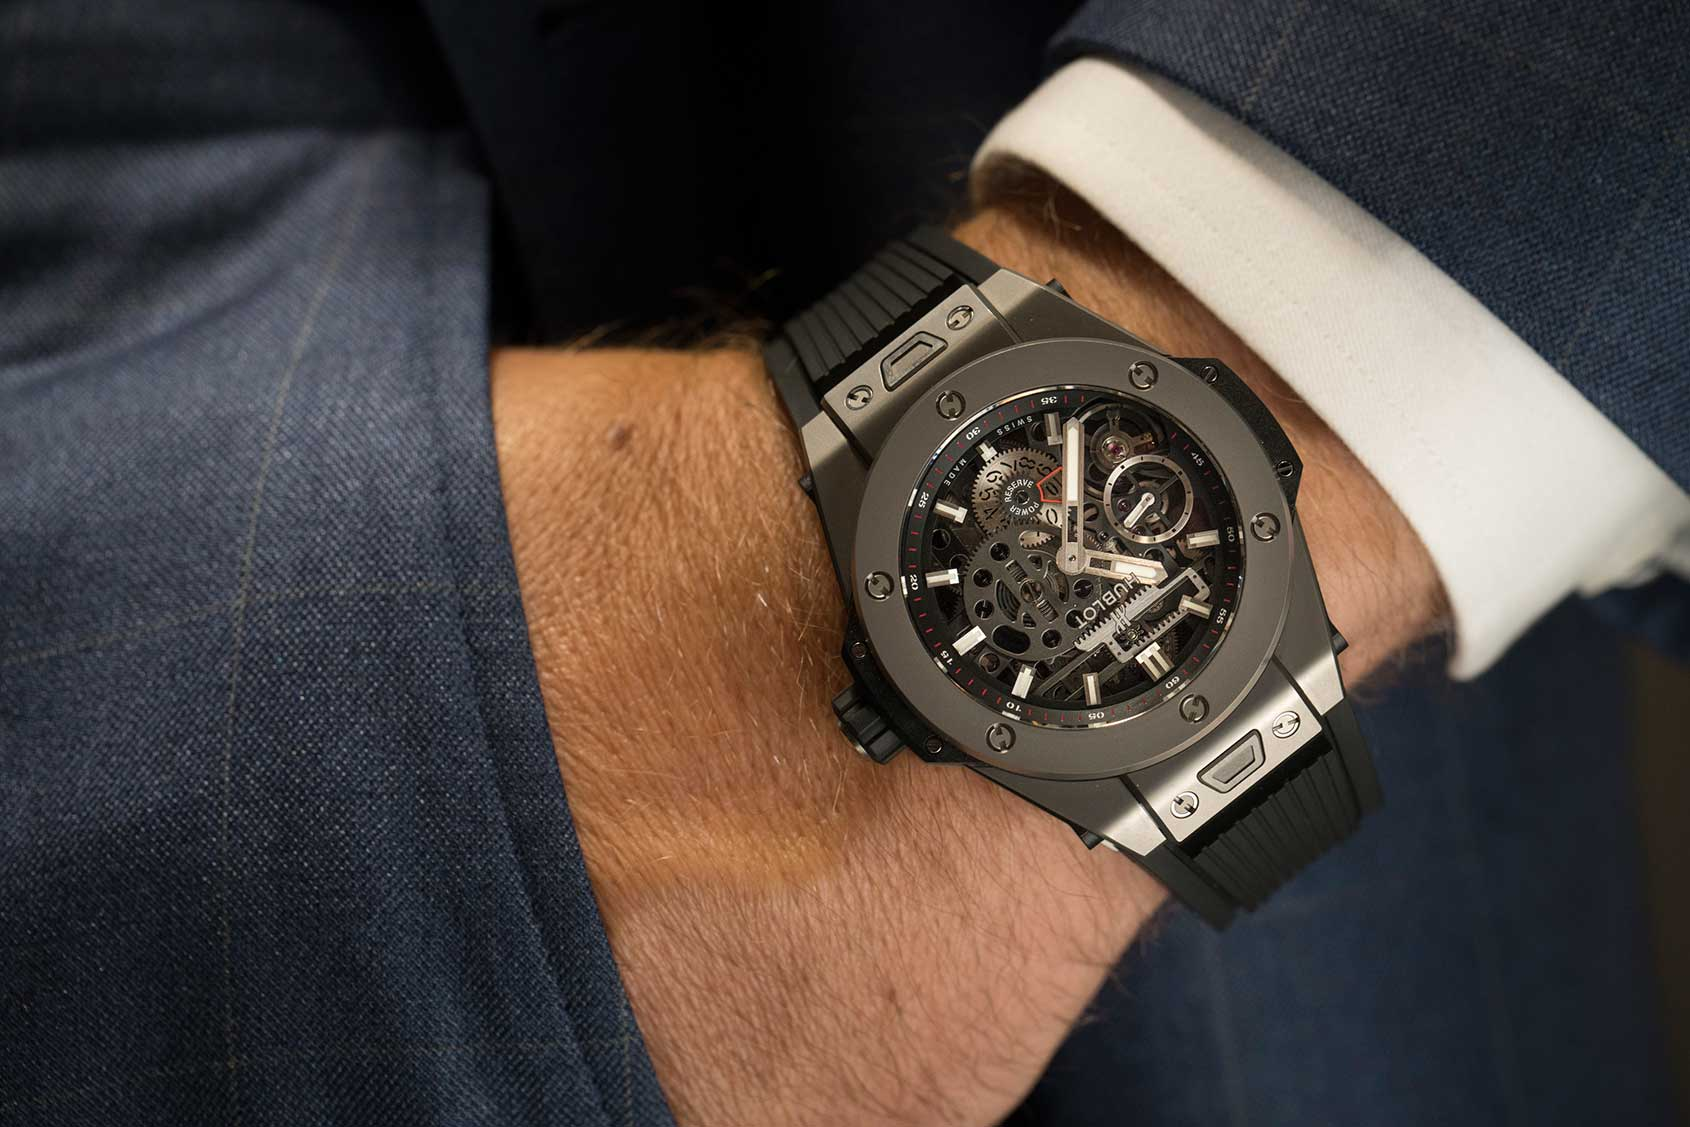 Why They All Love Their Watches